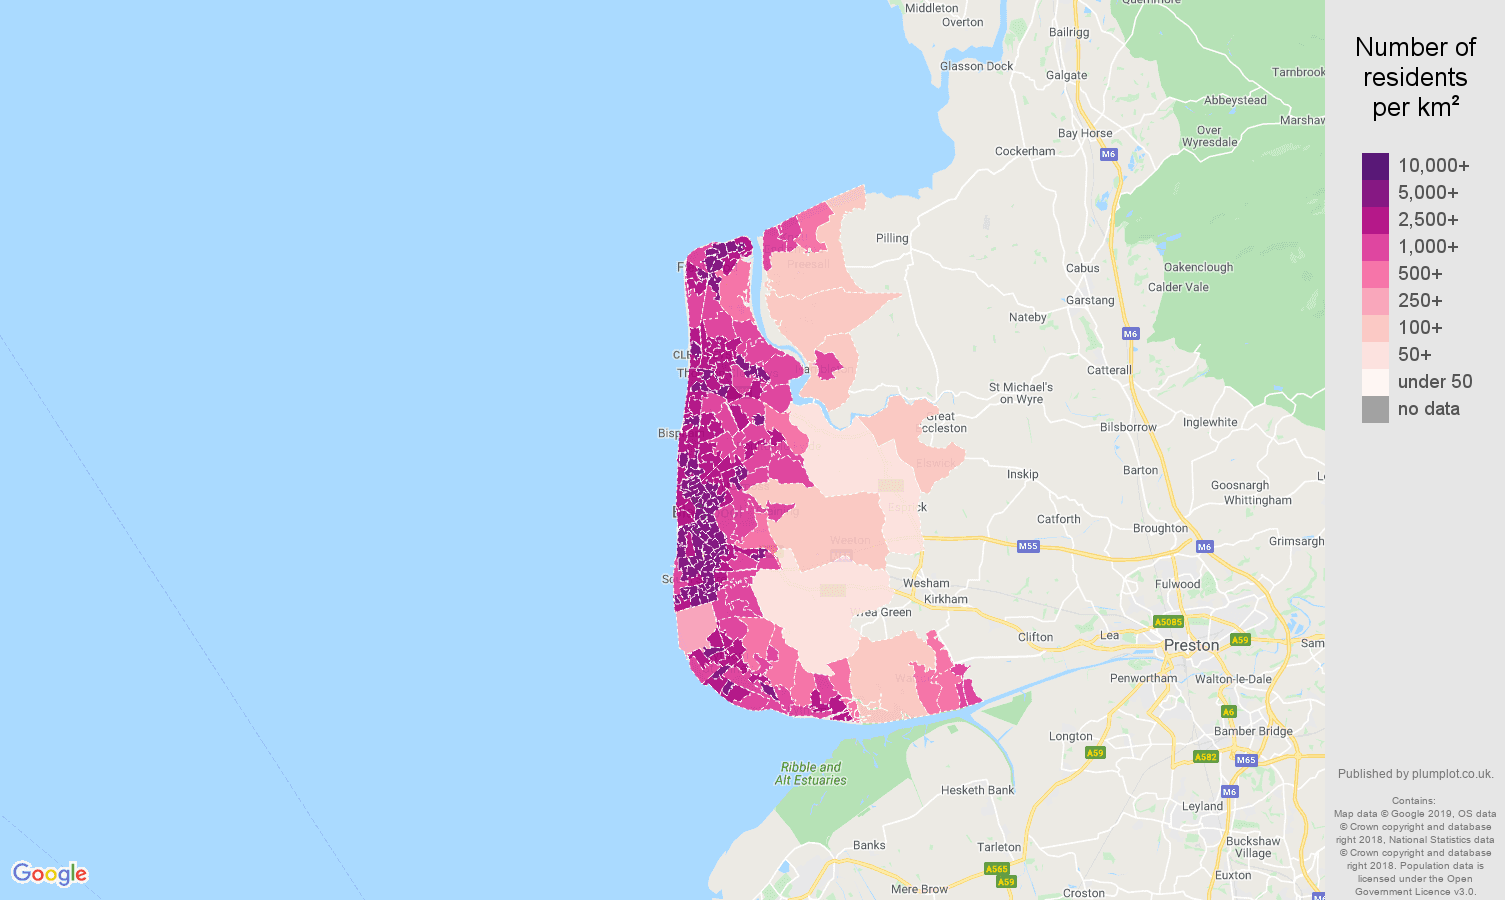 Blackpool population density map